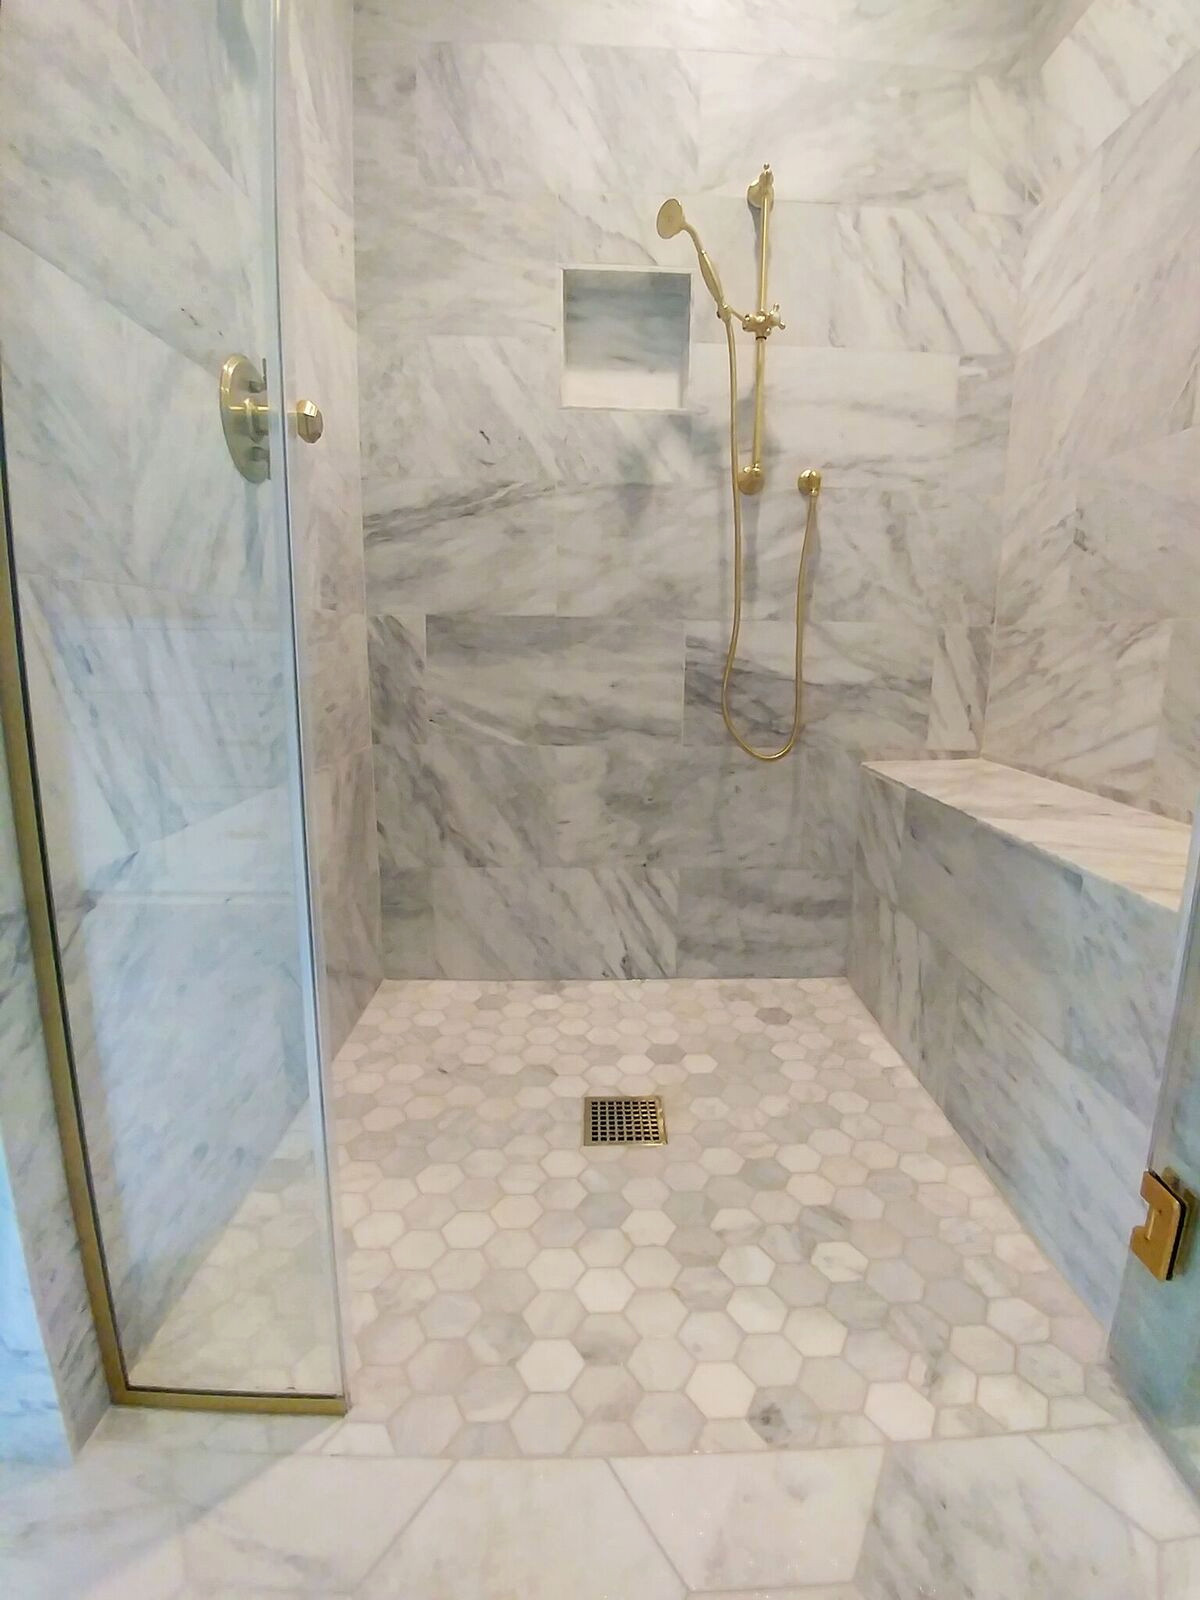 Level Entry / Curb-less Showers